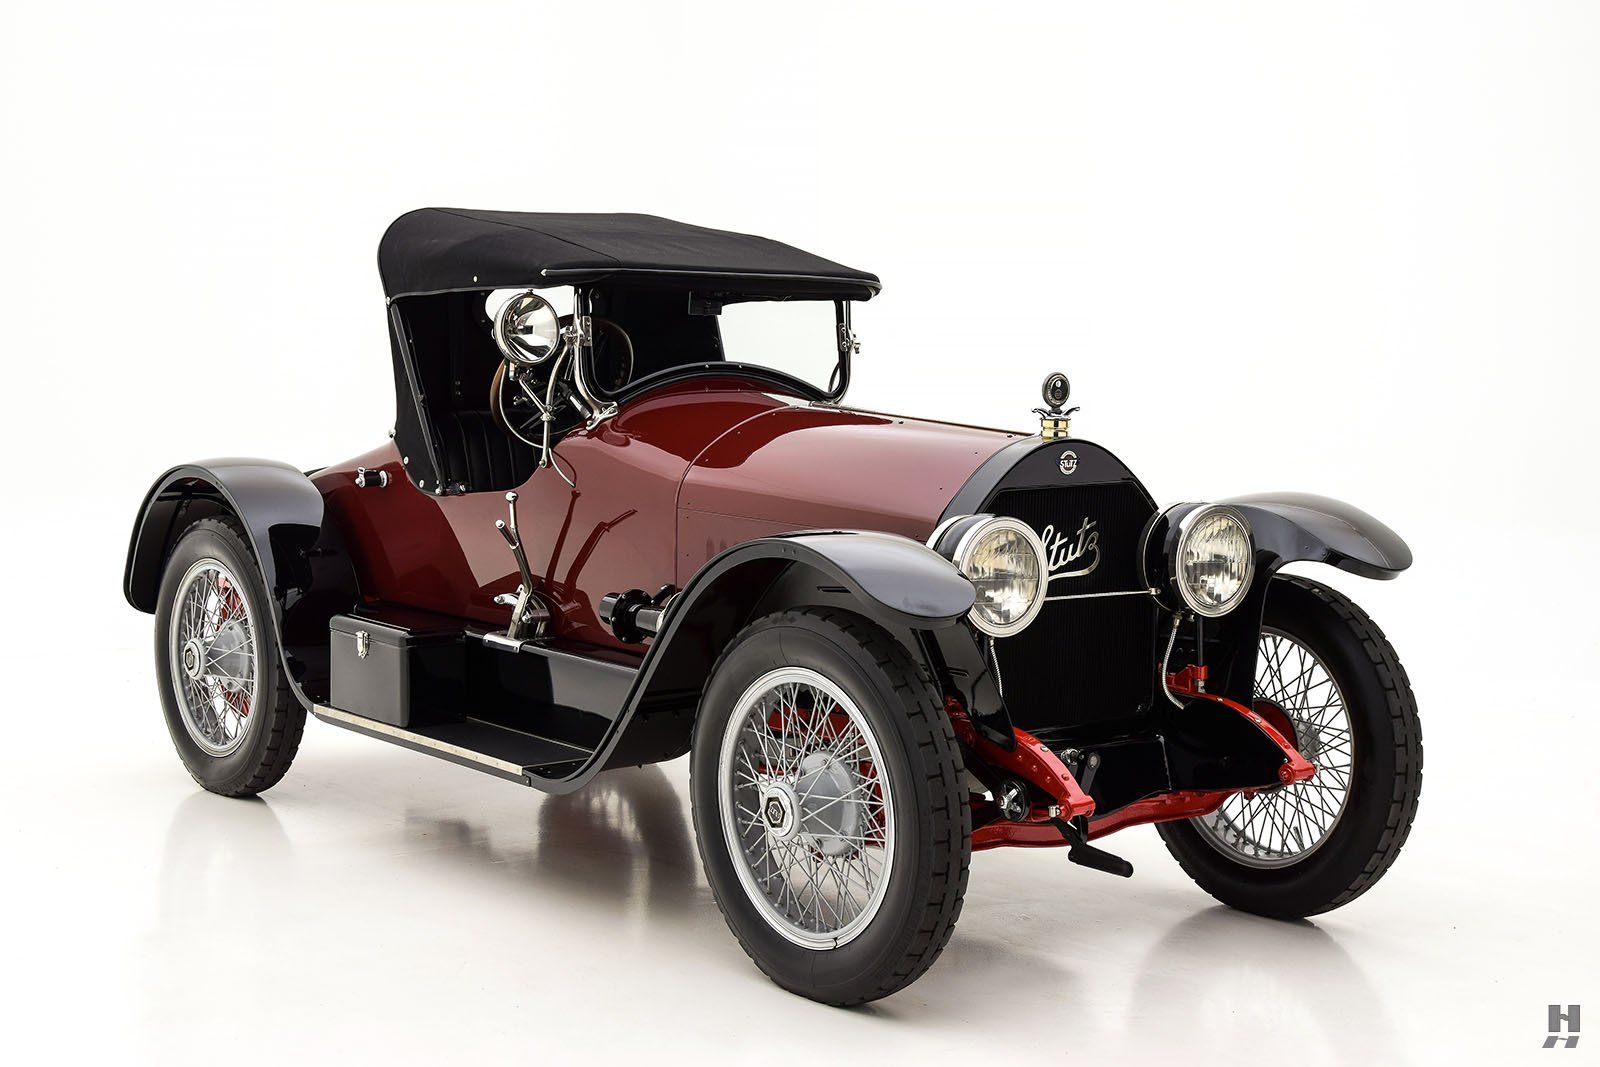 1920 Stutz Bearcat | Classic Cars | Pinterest | Cars, Vehicle and ...